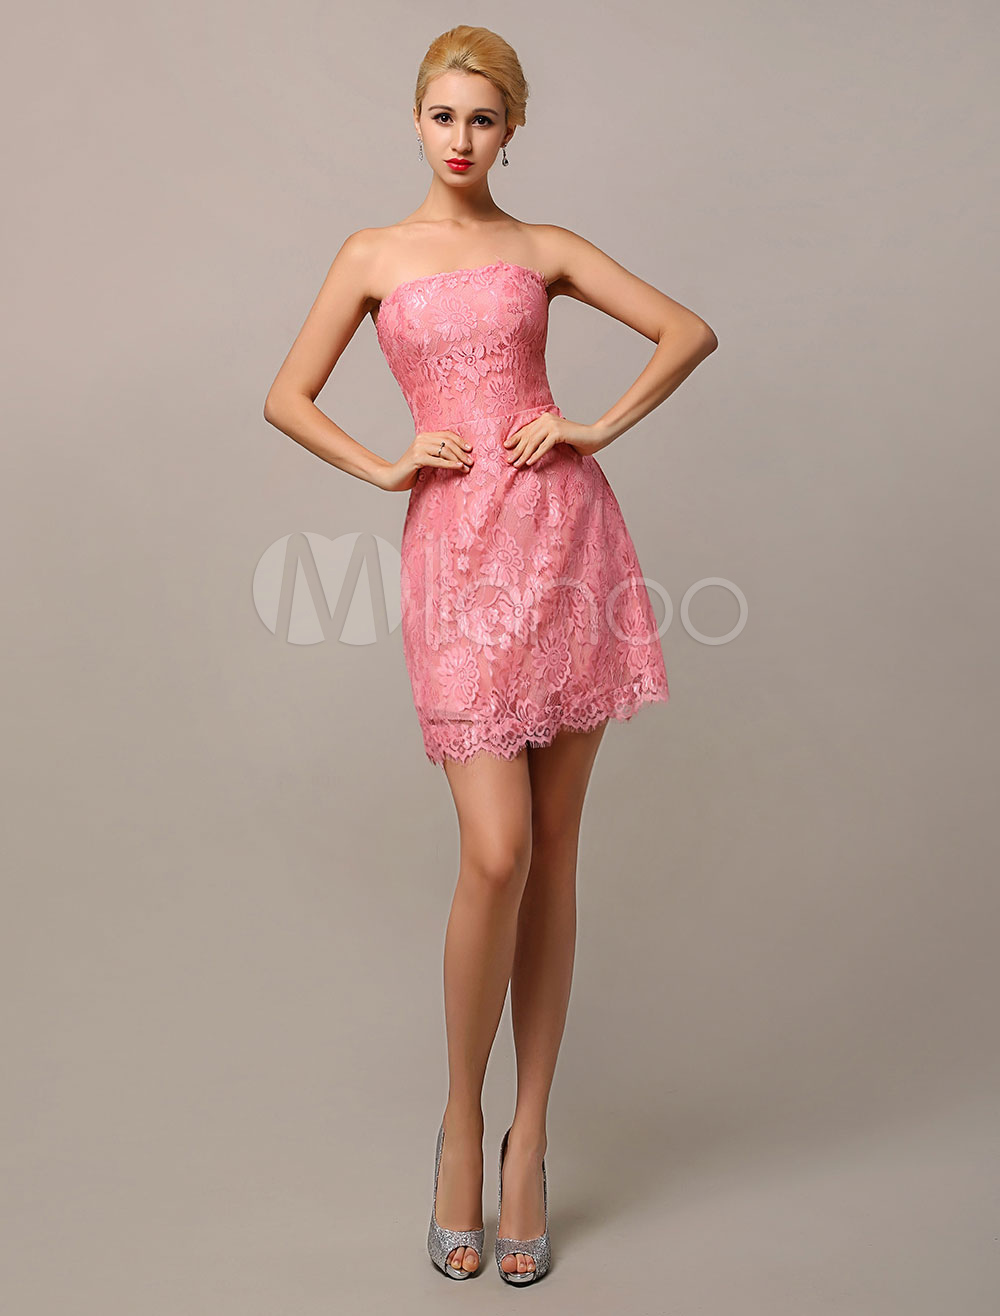 Blush Pink Elegant Strapless Short Lace Bridesmaid Dress Wedding Guest Dress